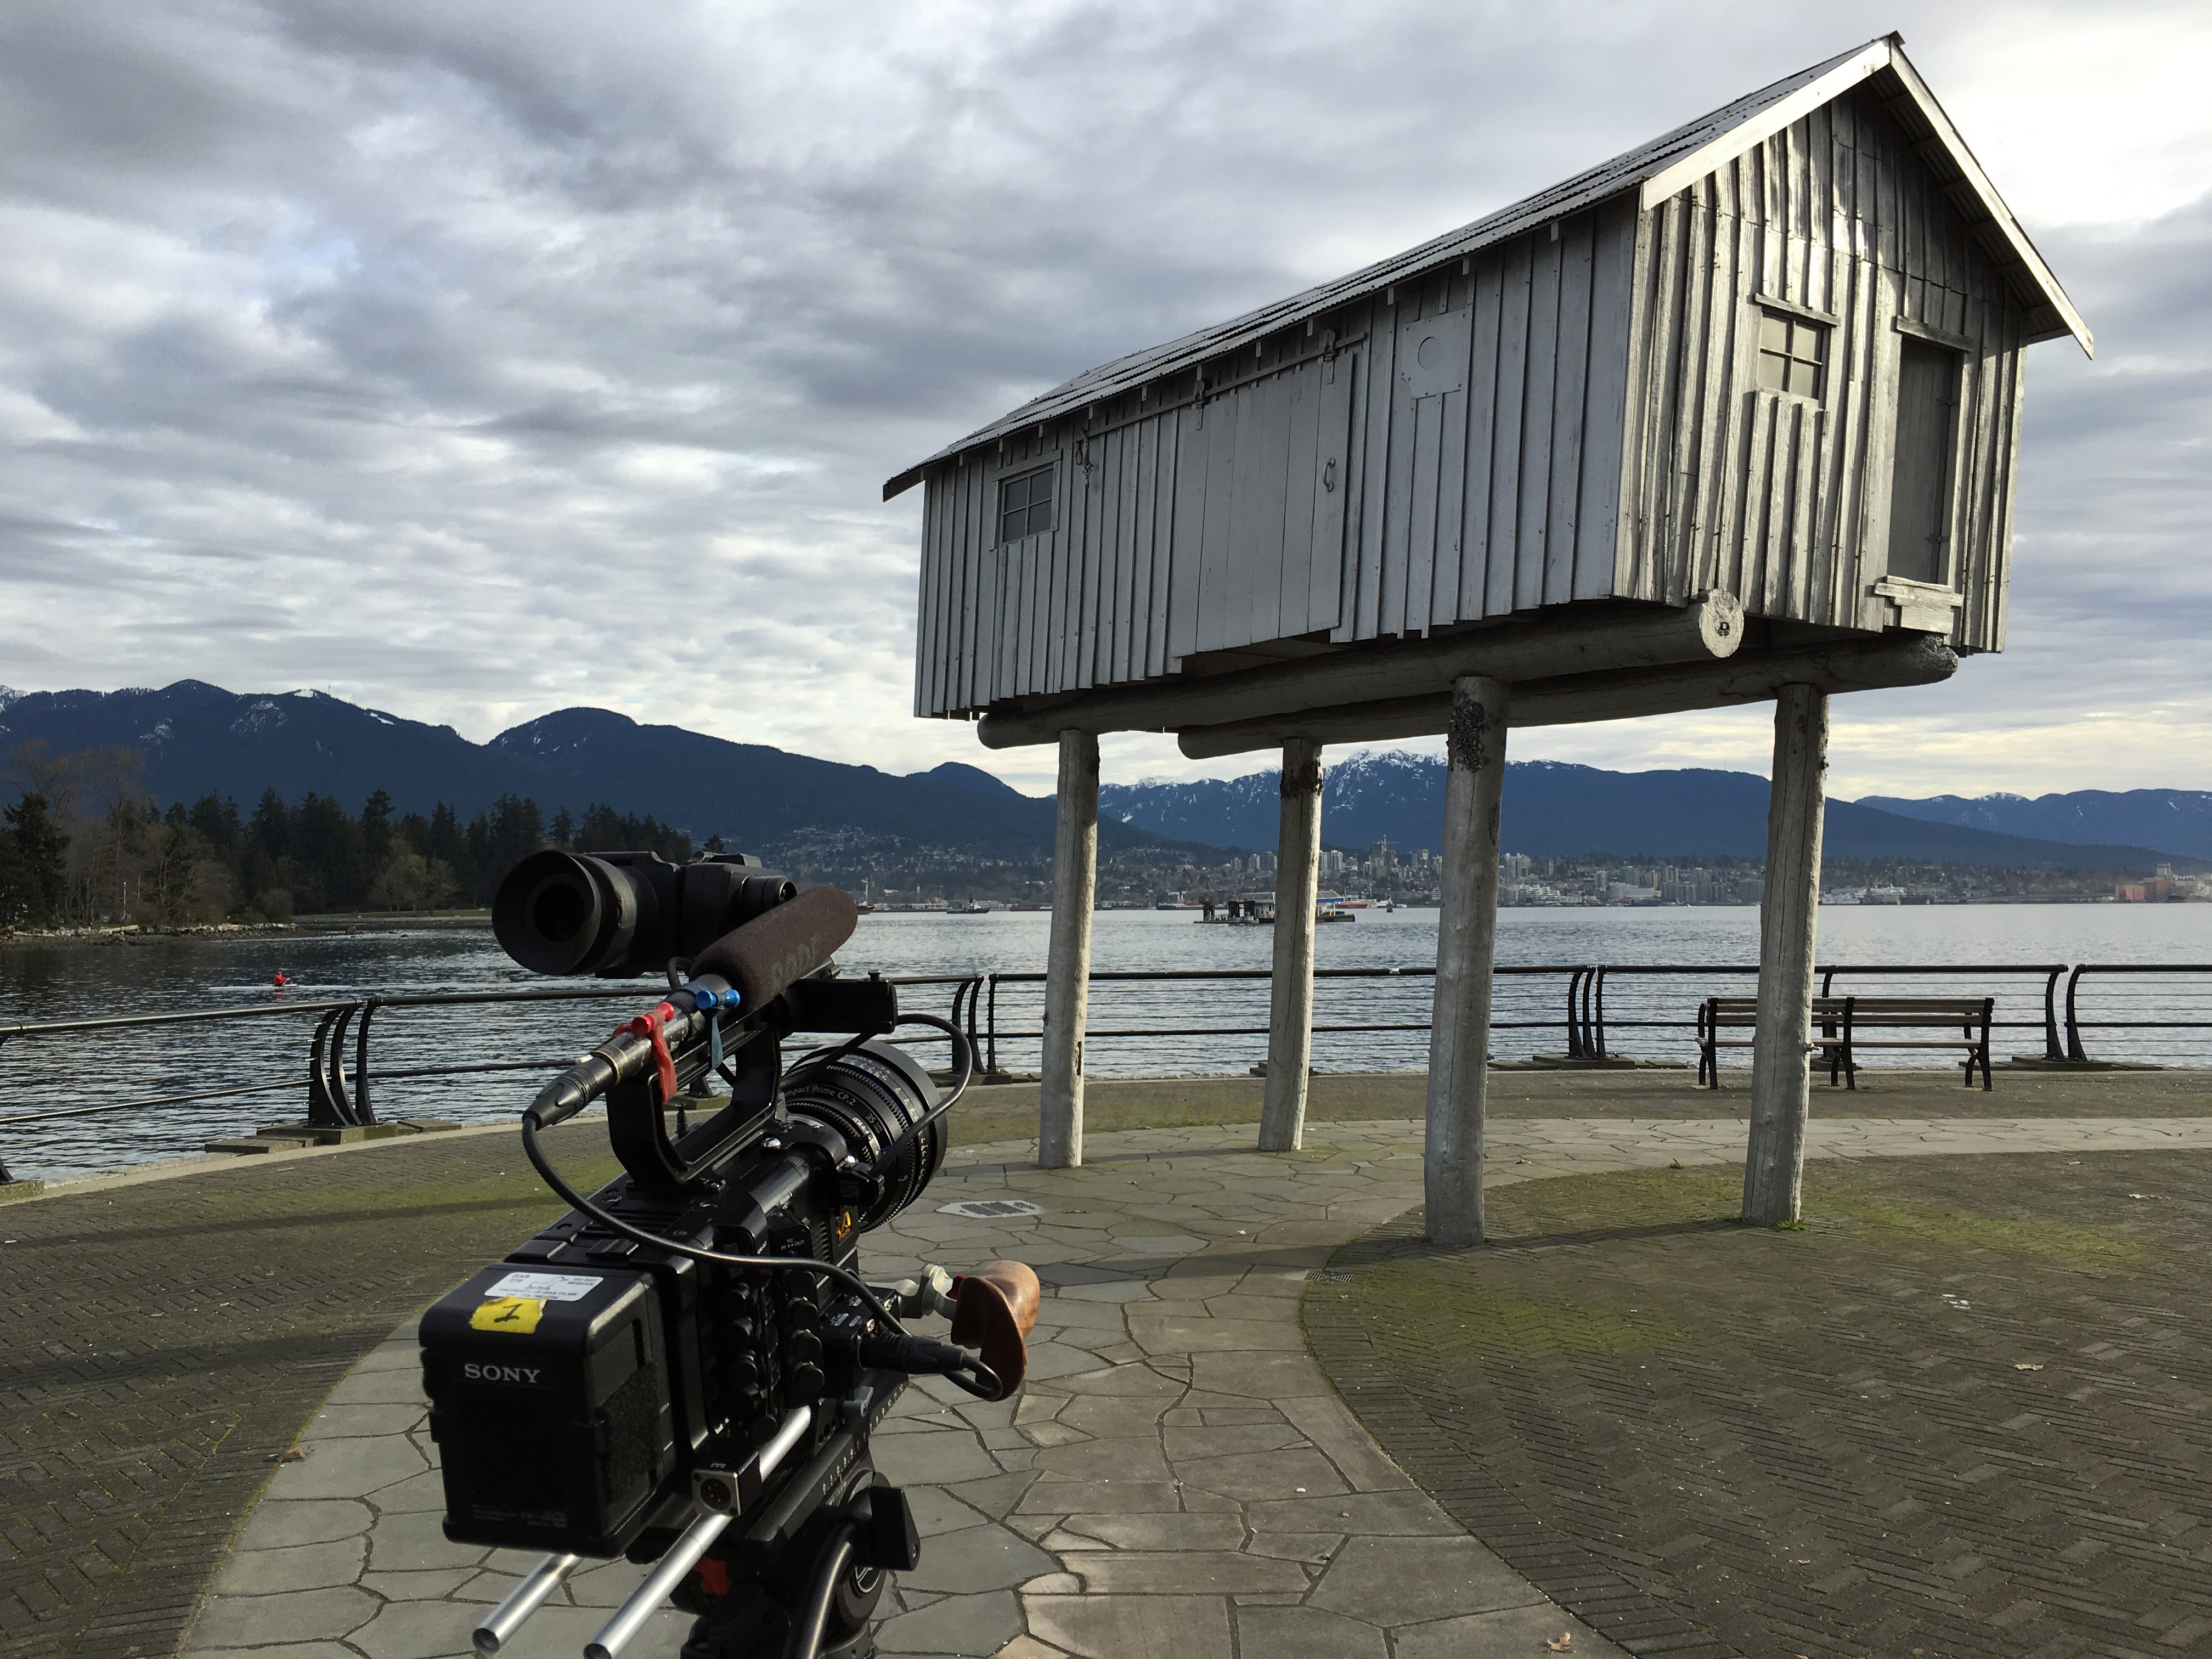 ART21 filming Liz Magor's LightShed at Coal Harbour in Vancouver, Canada, 2016. Behind the scenes of ART21's series Art in the Twenty-First Century, Season 8, 2016. Photo: Wesley Miller. © ART21, Inc. 2016.